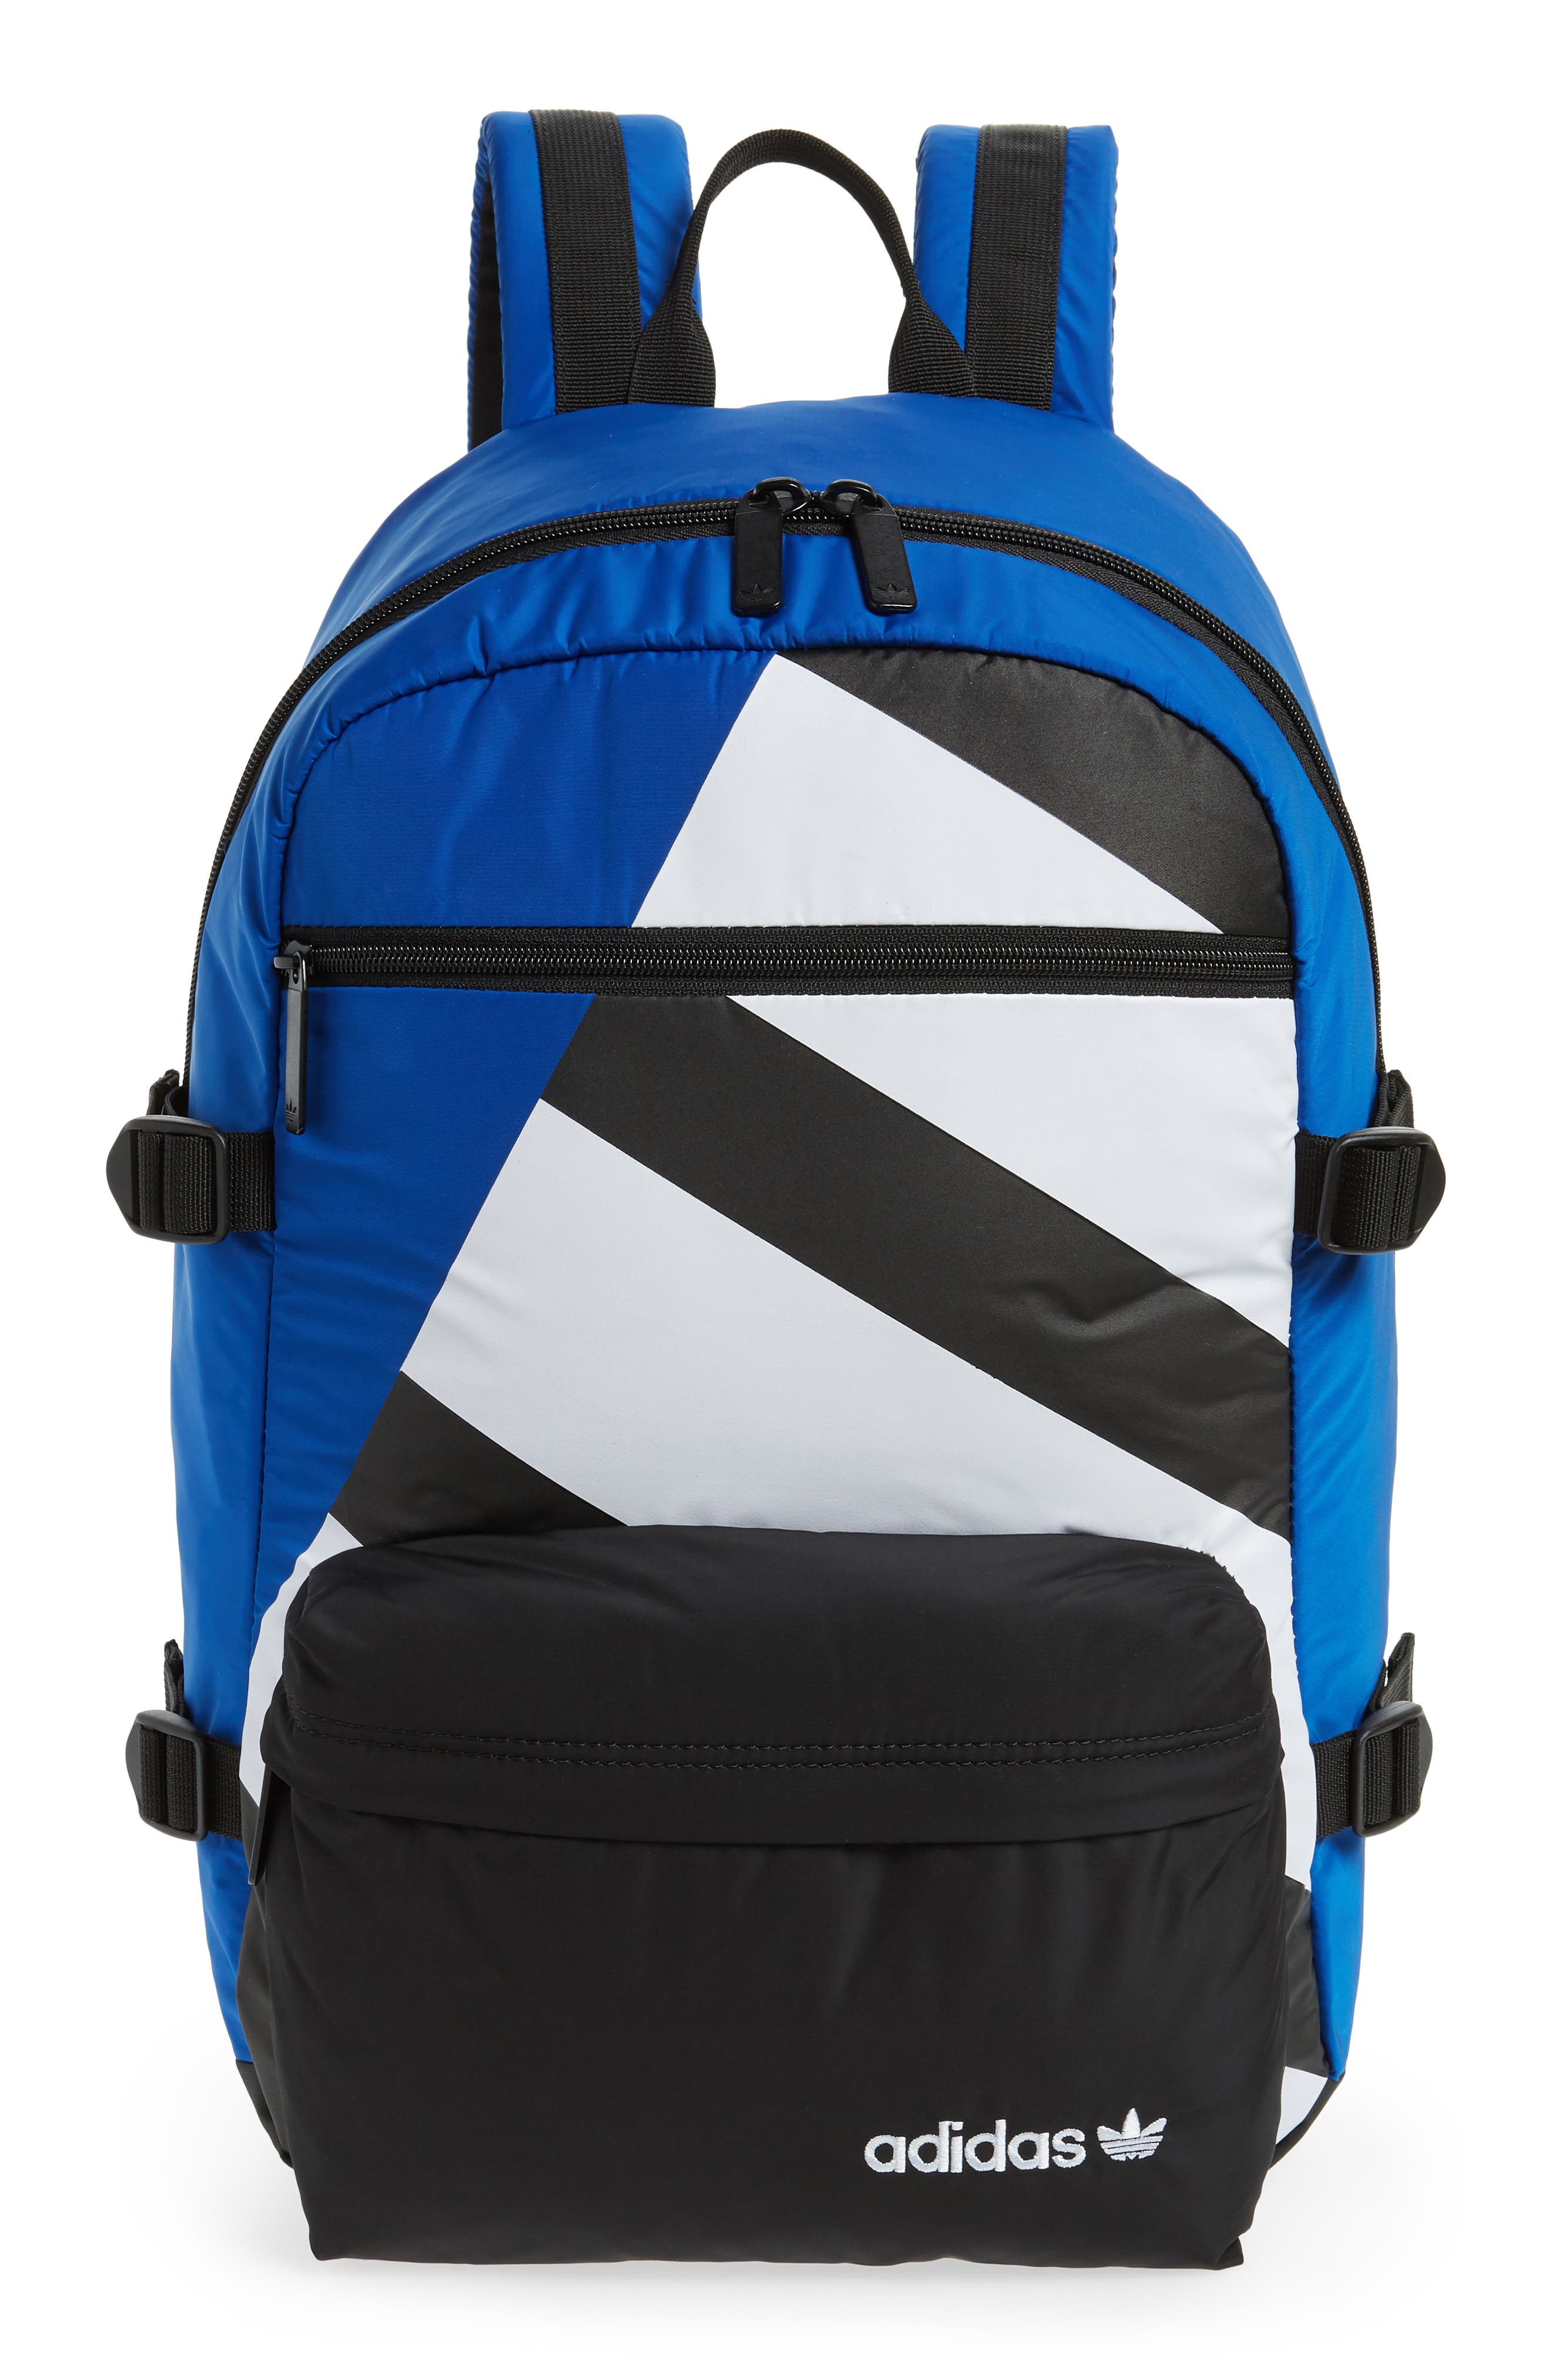 Adidas Original Eqt Blocked Backpack -